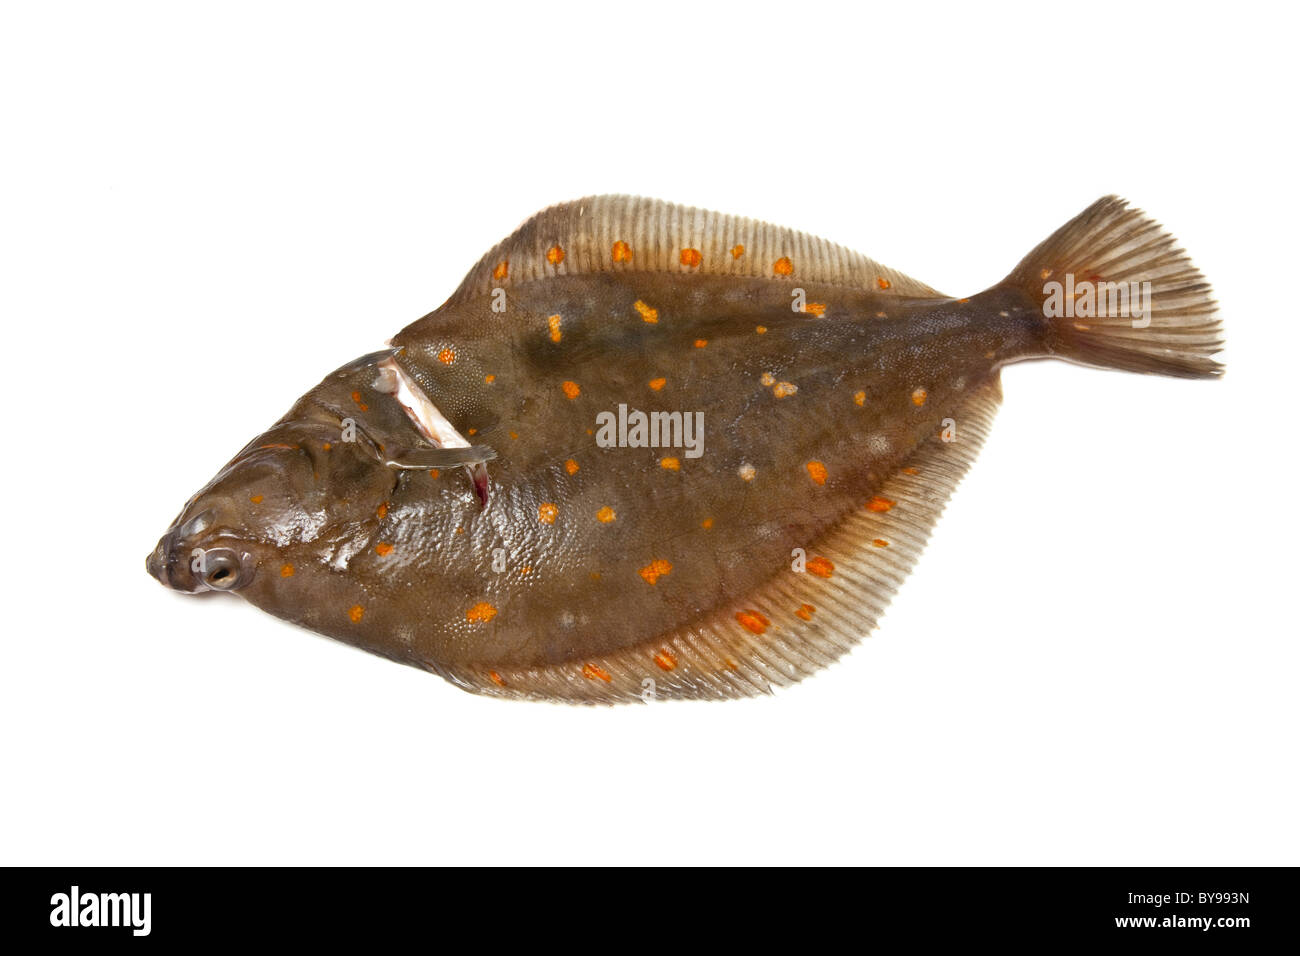 Plaice flatfish isolated on a white studio background. - Stock Image